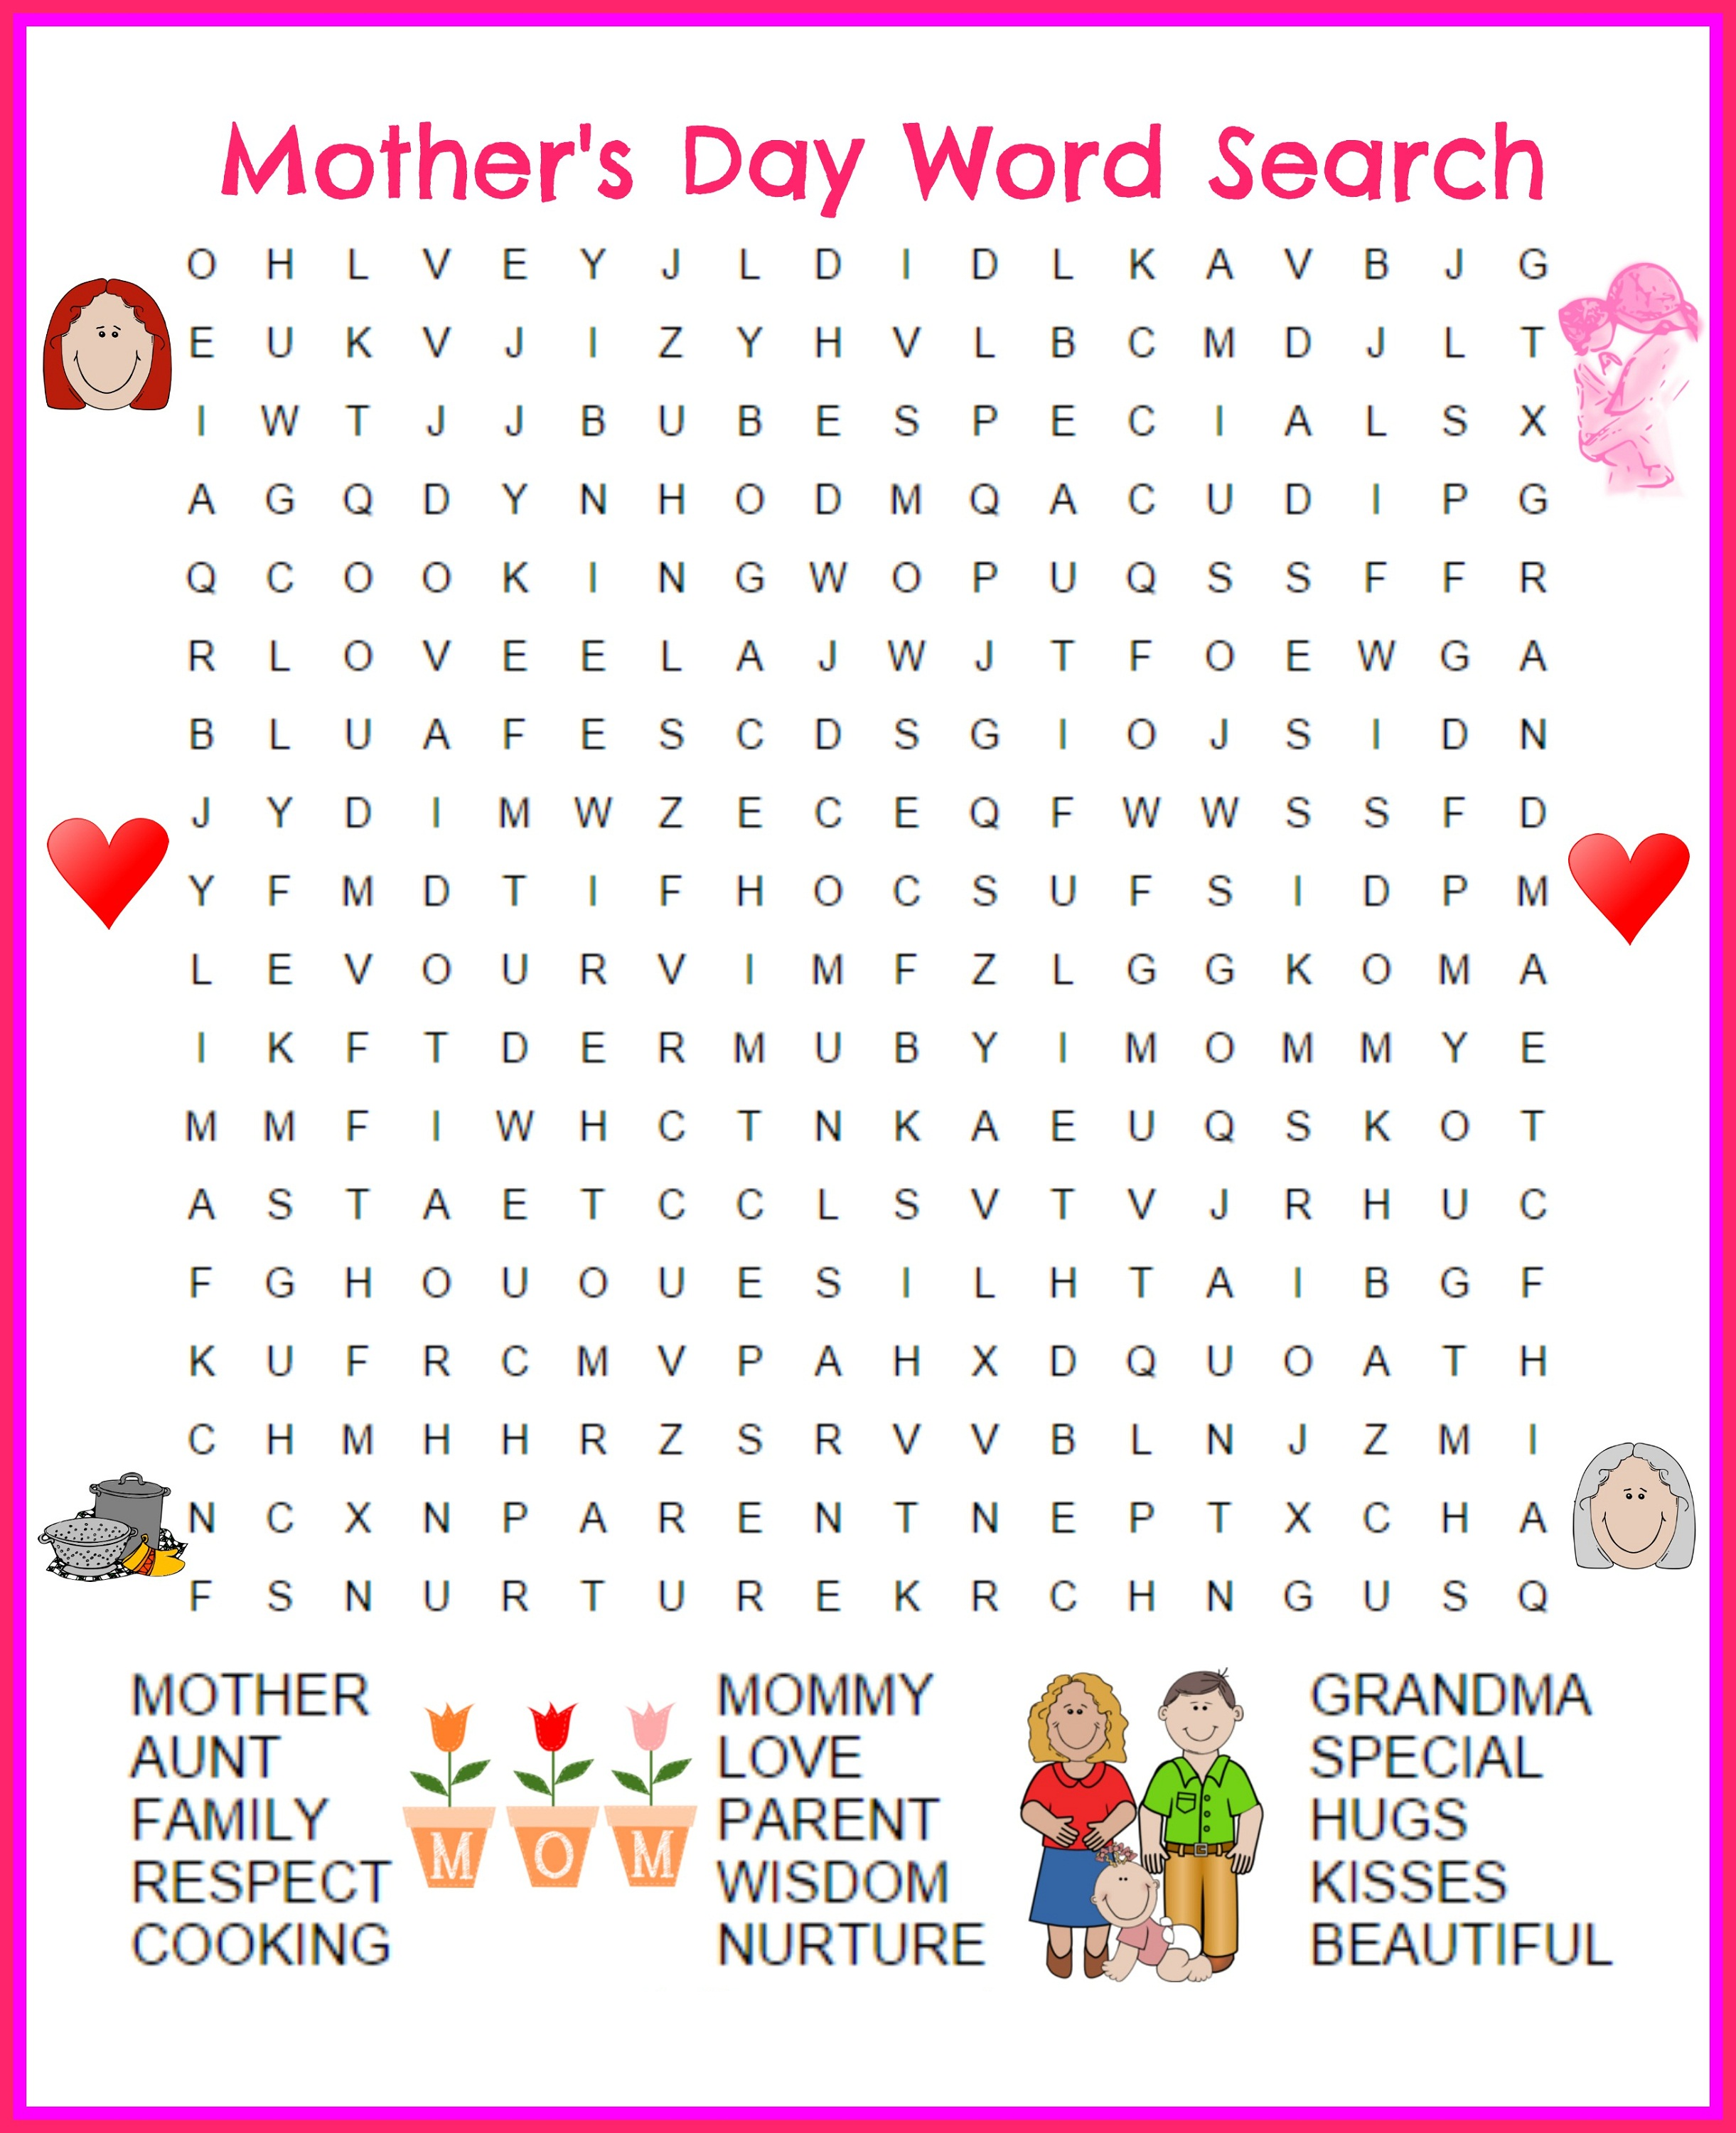 great day word search mother's day